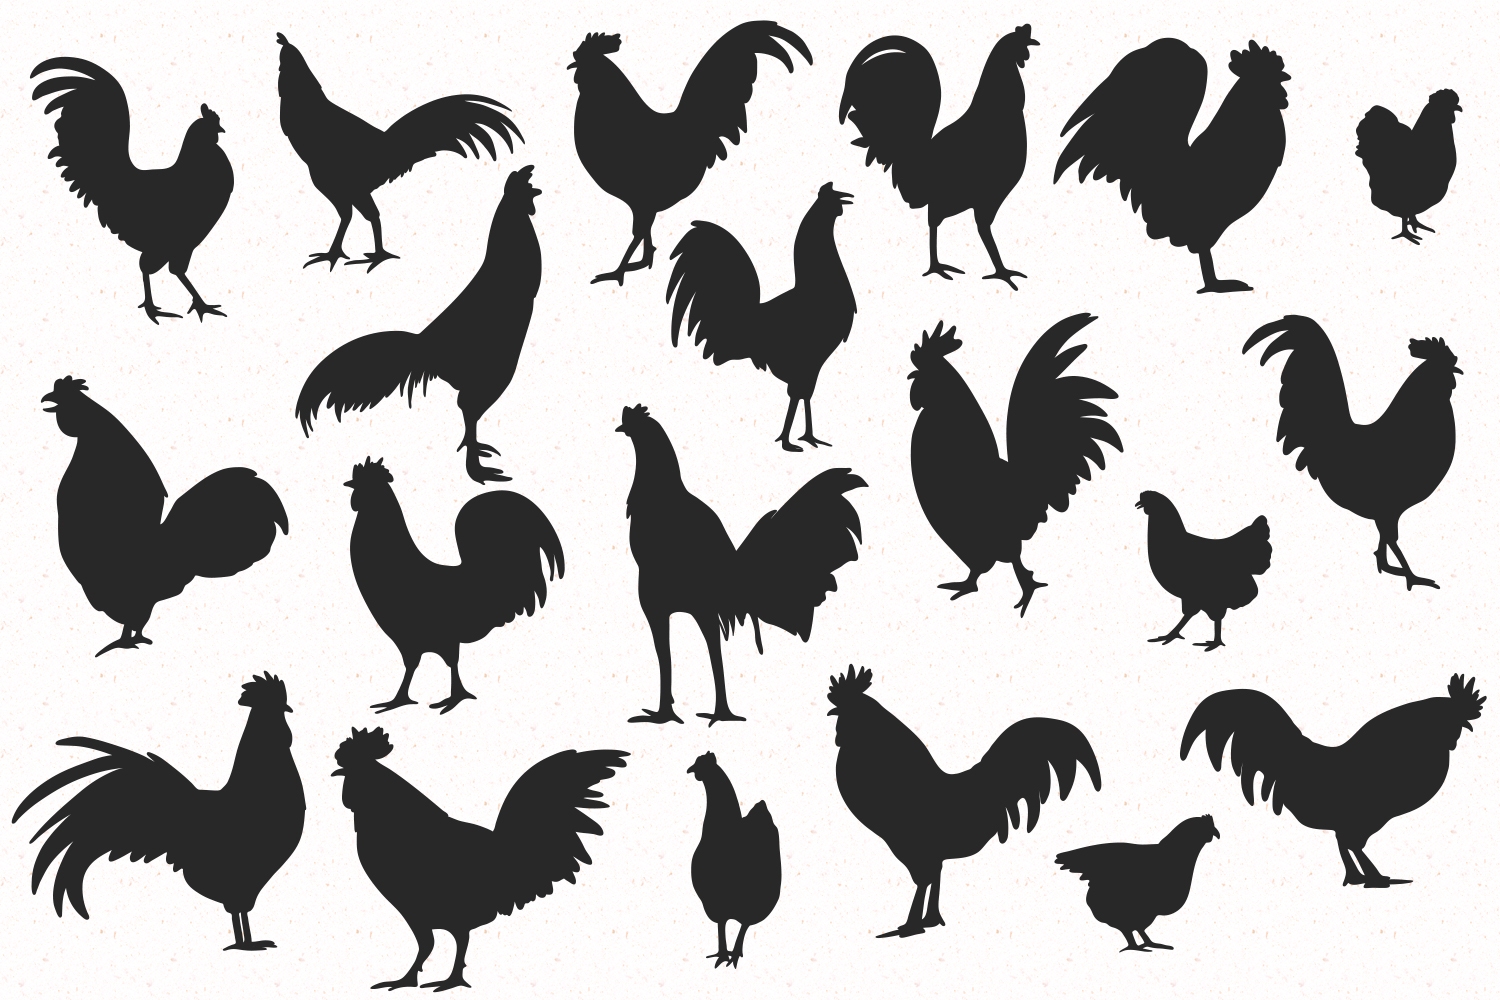 Rooster silhouette set example image 2